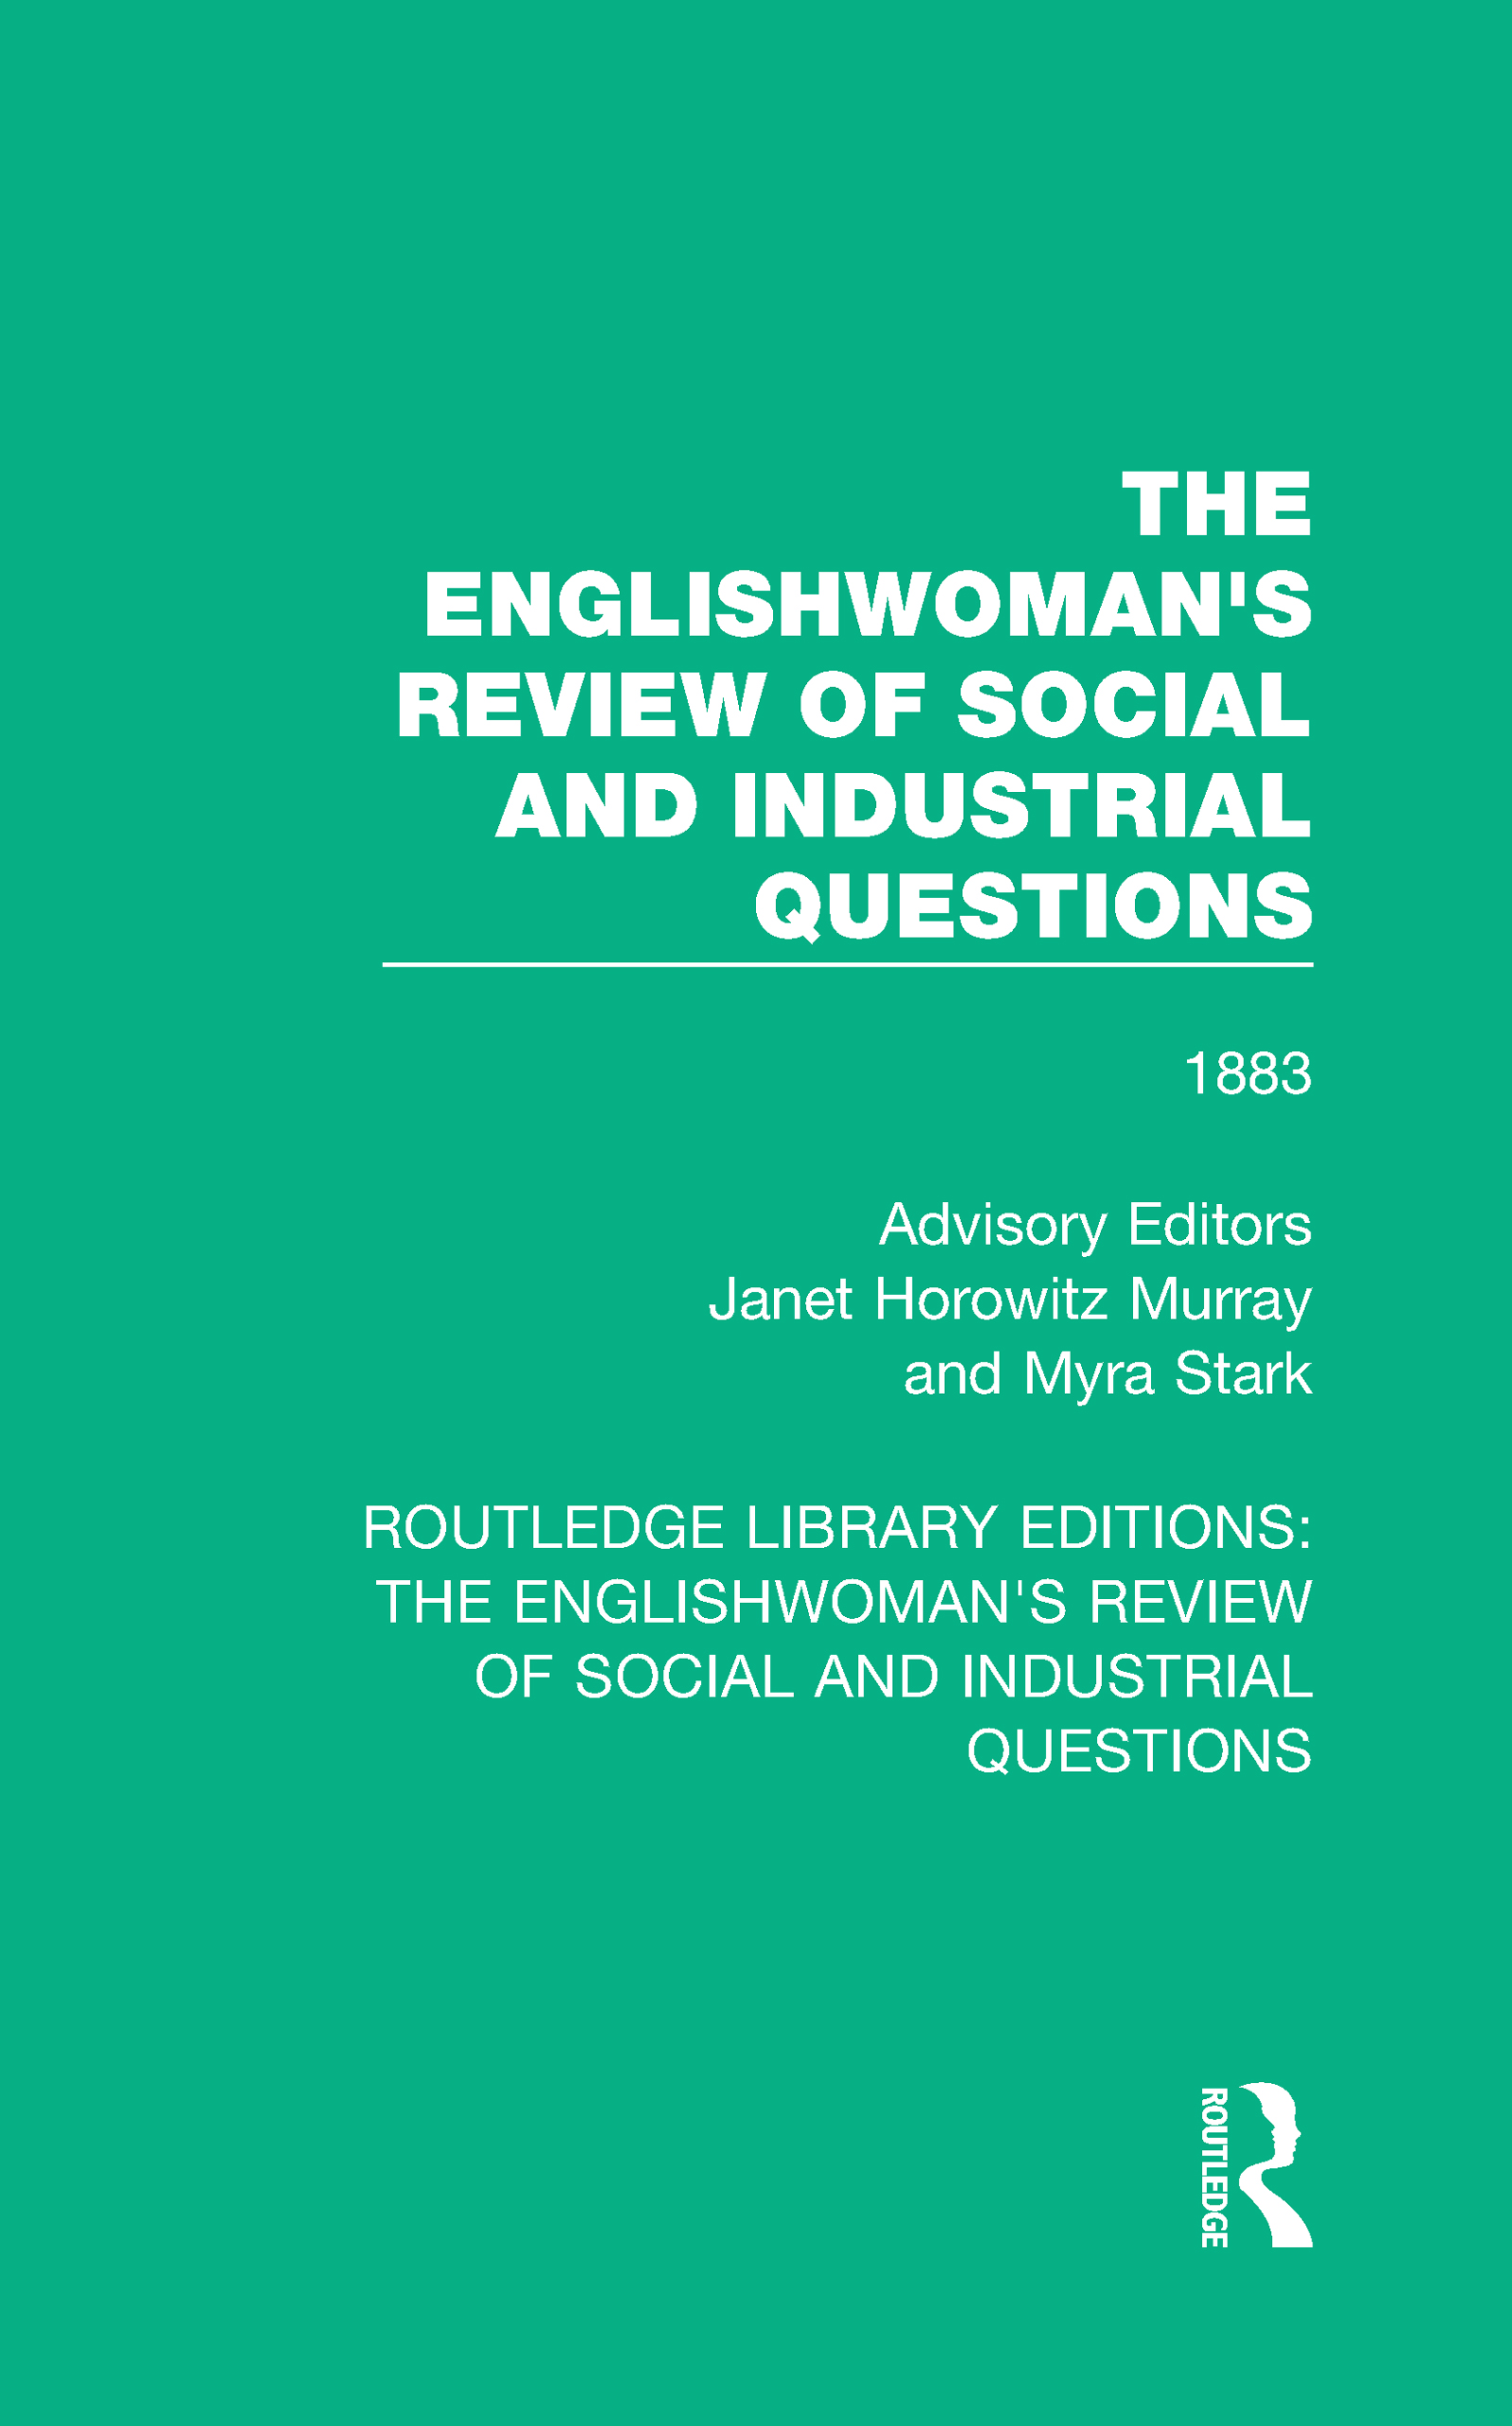 The Englishwoman's Review of Social and Industrial Questions: 1883 book cover